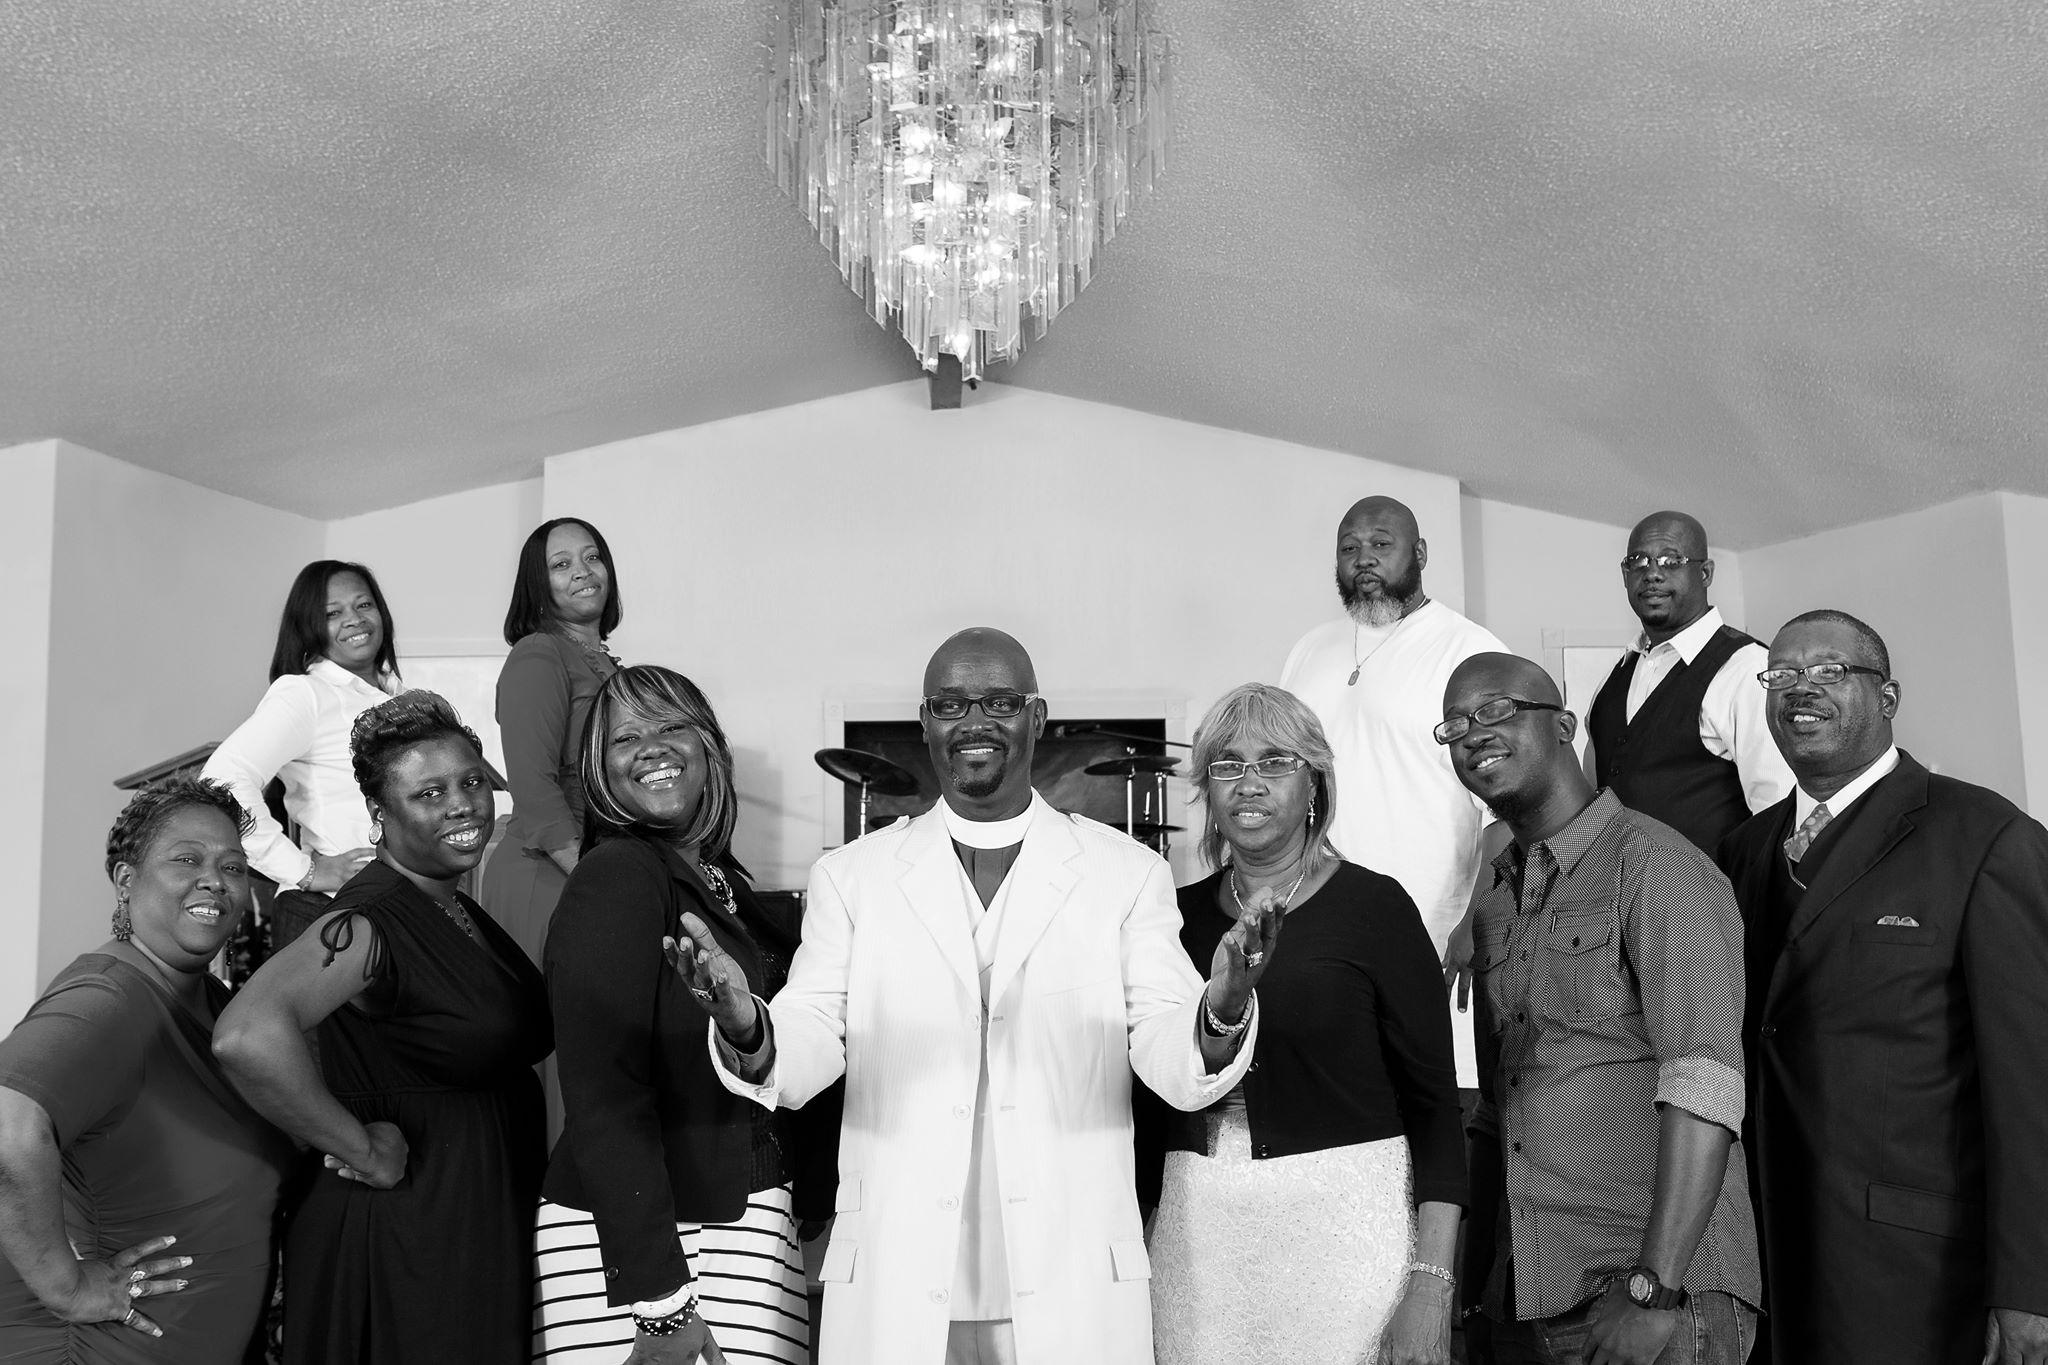 Texas Gospel Group Shines in New Film at SXSW